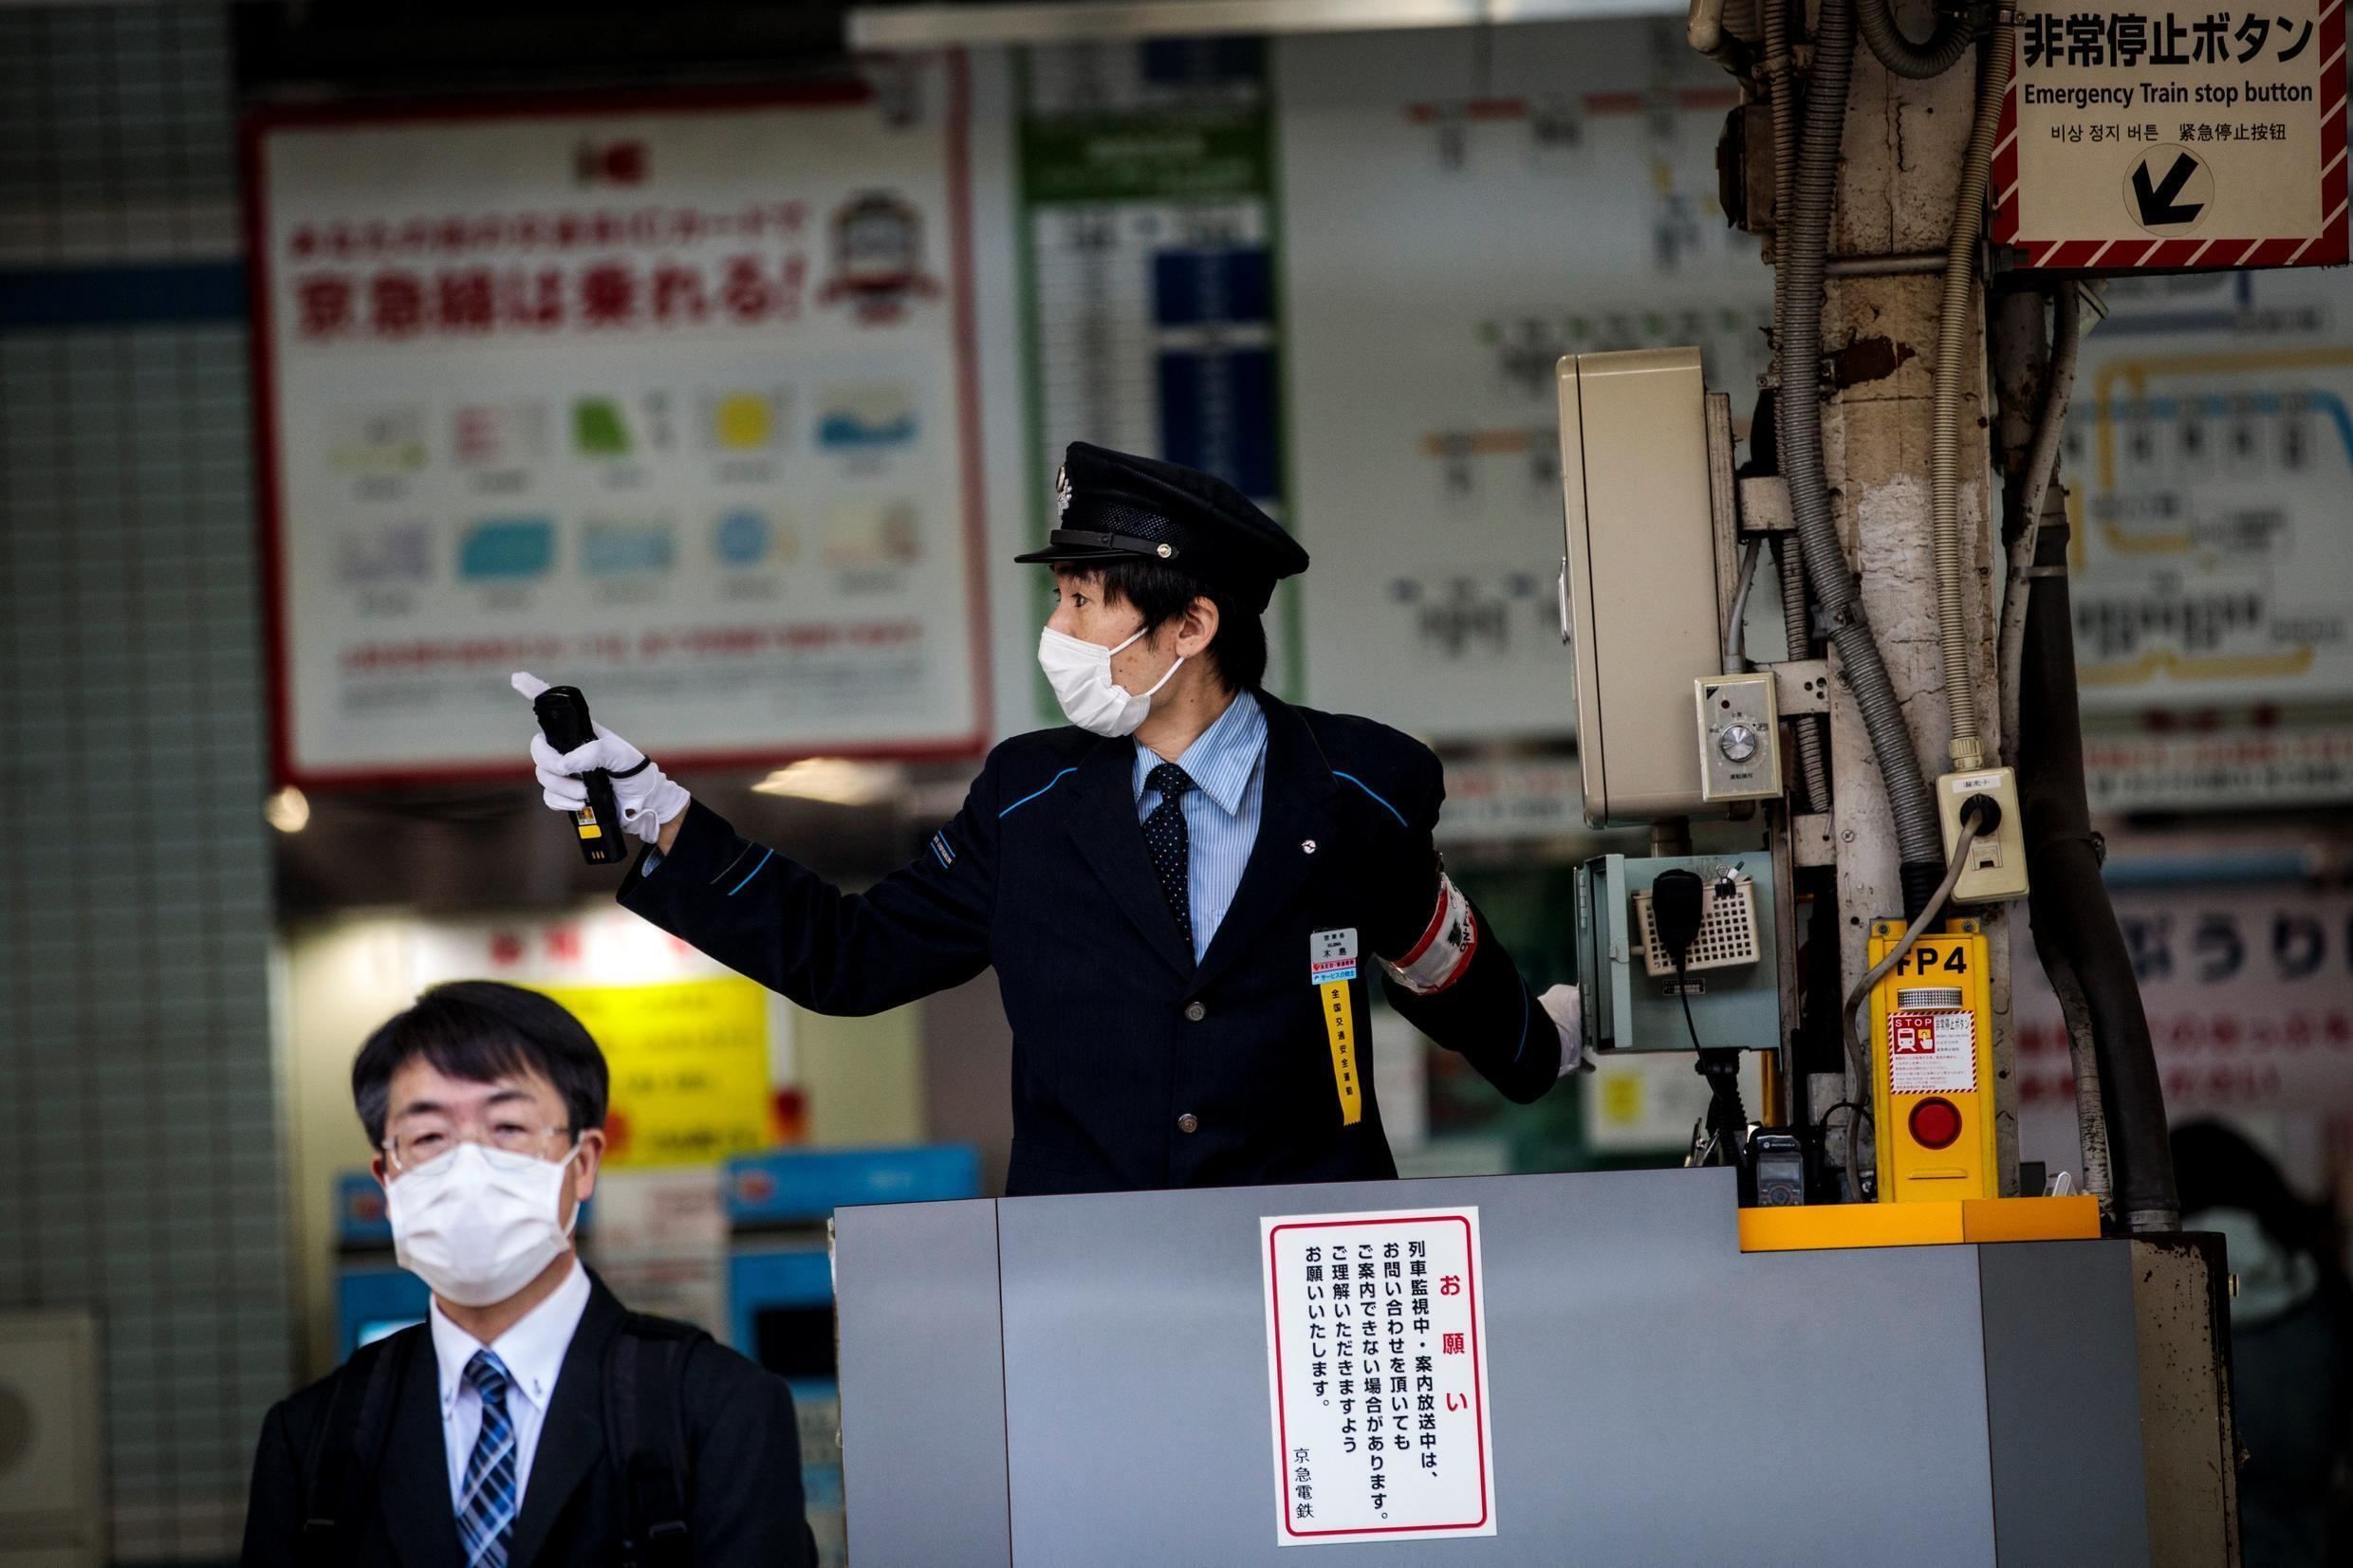 Japan could soon find itself under a state of emergency because of the coronavirus